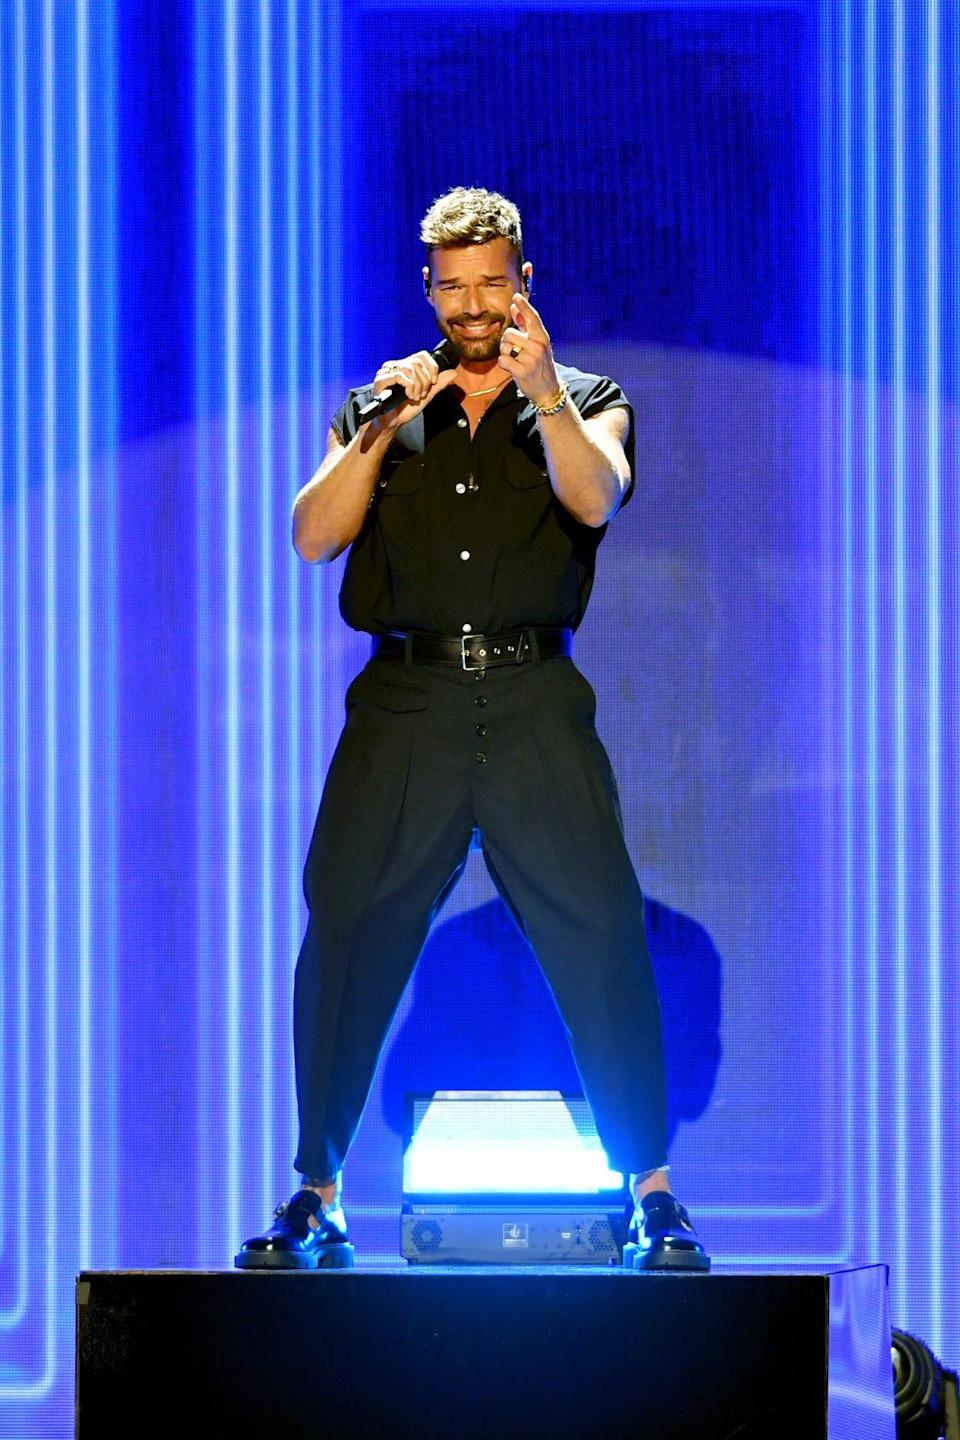 Ricky Martin, shown performing in Coral Gables, Fla., in July, is embarking on a joint tour with fellow Latin superstar Enrique Iglesias.